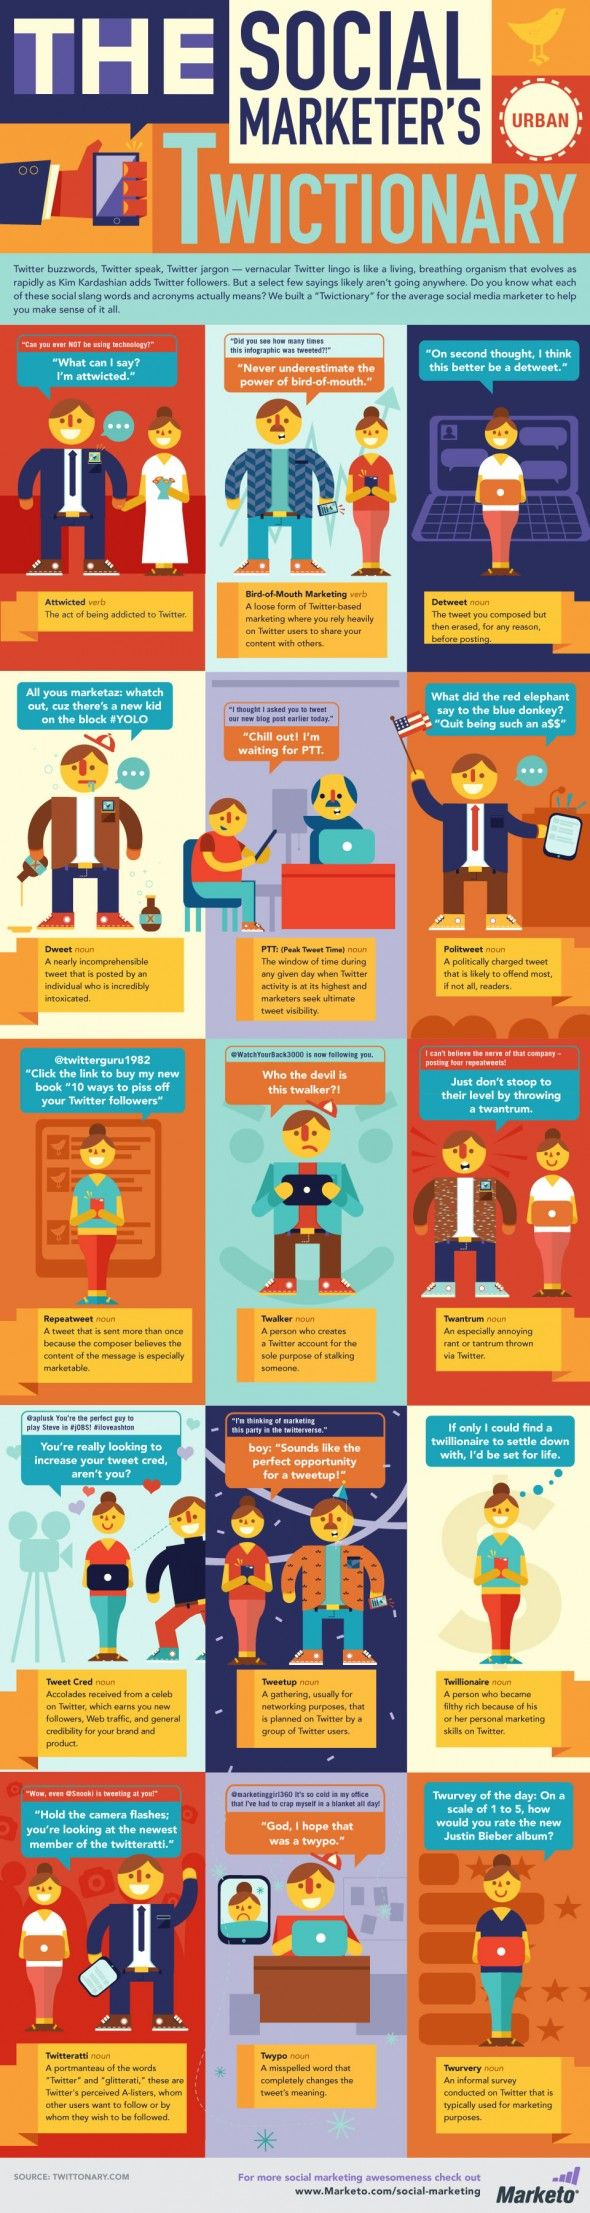 Infographic: The Social Marketer's Urban Twictionary